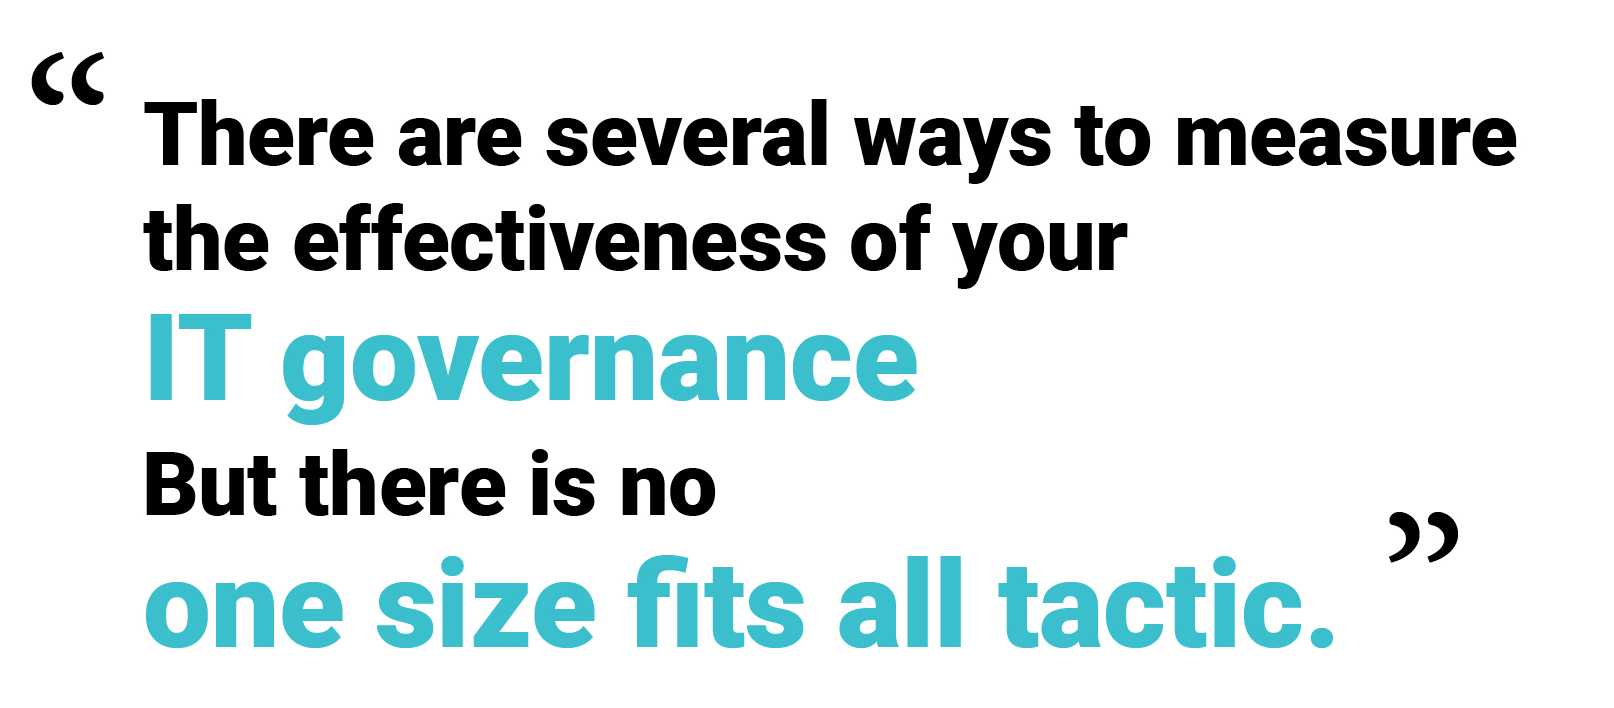 There are several ways to measure the effectiveness of your IT governance. But there is no one-size-fits-all tactic.